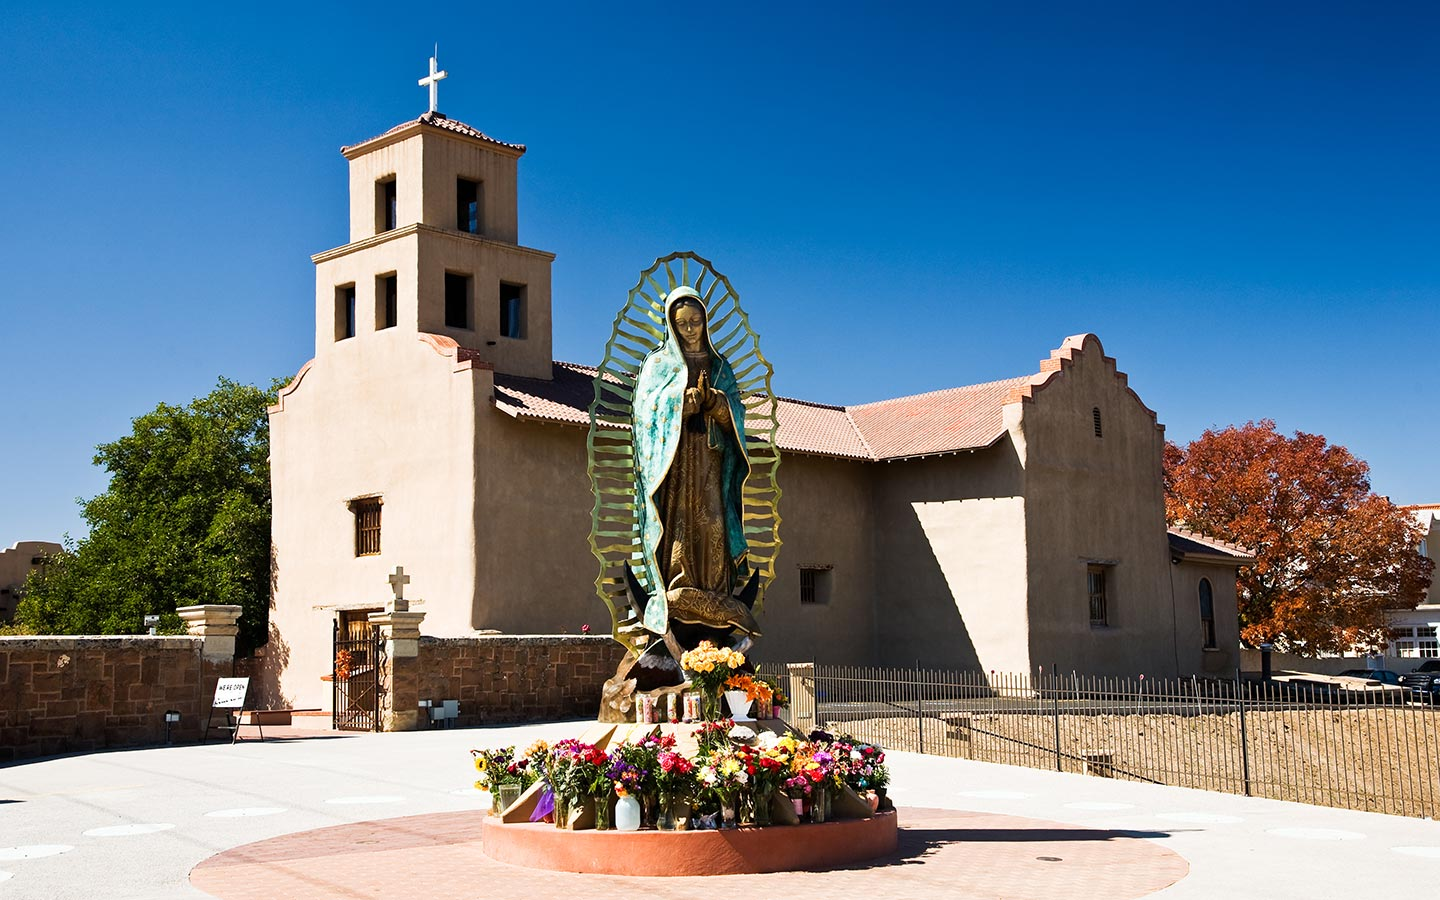 Places to Stay in Santa Fe, NM